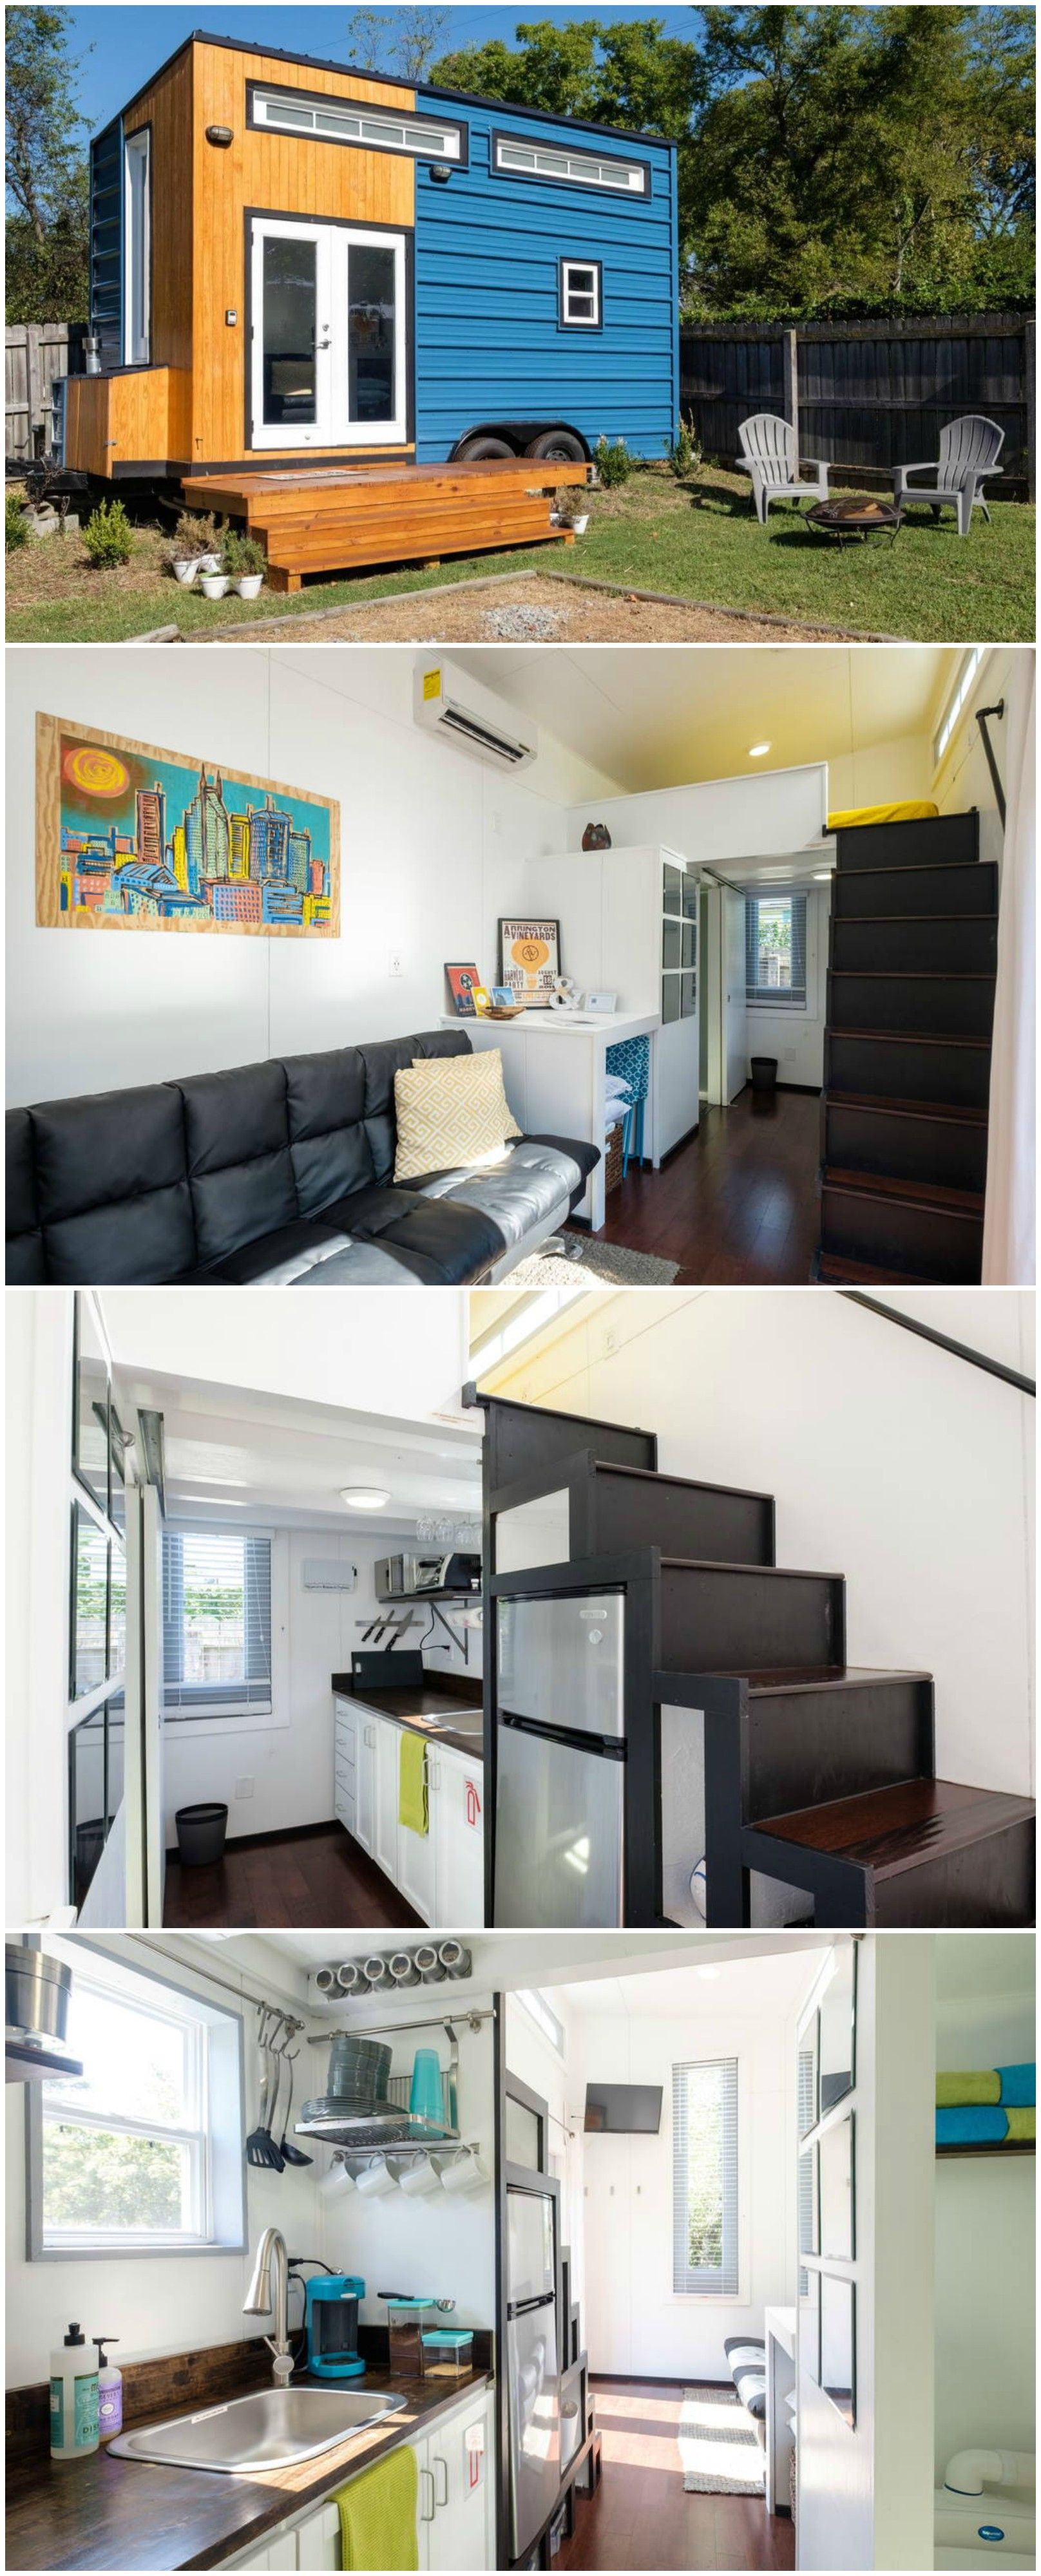 The Nashville Tiny House has a modern, minimalist design with clean on minimalist home design, modern architecture home design, self-sustaining home design, bauhaus home design, baroque home design, zero energy home design, ultra modern home design, art nouveau home design, art deco home design,